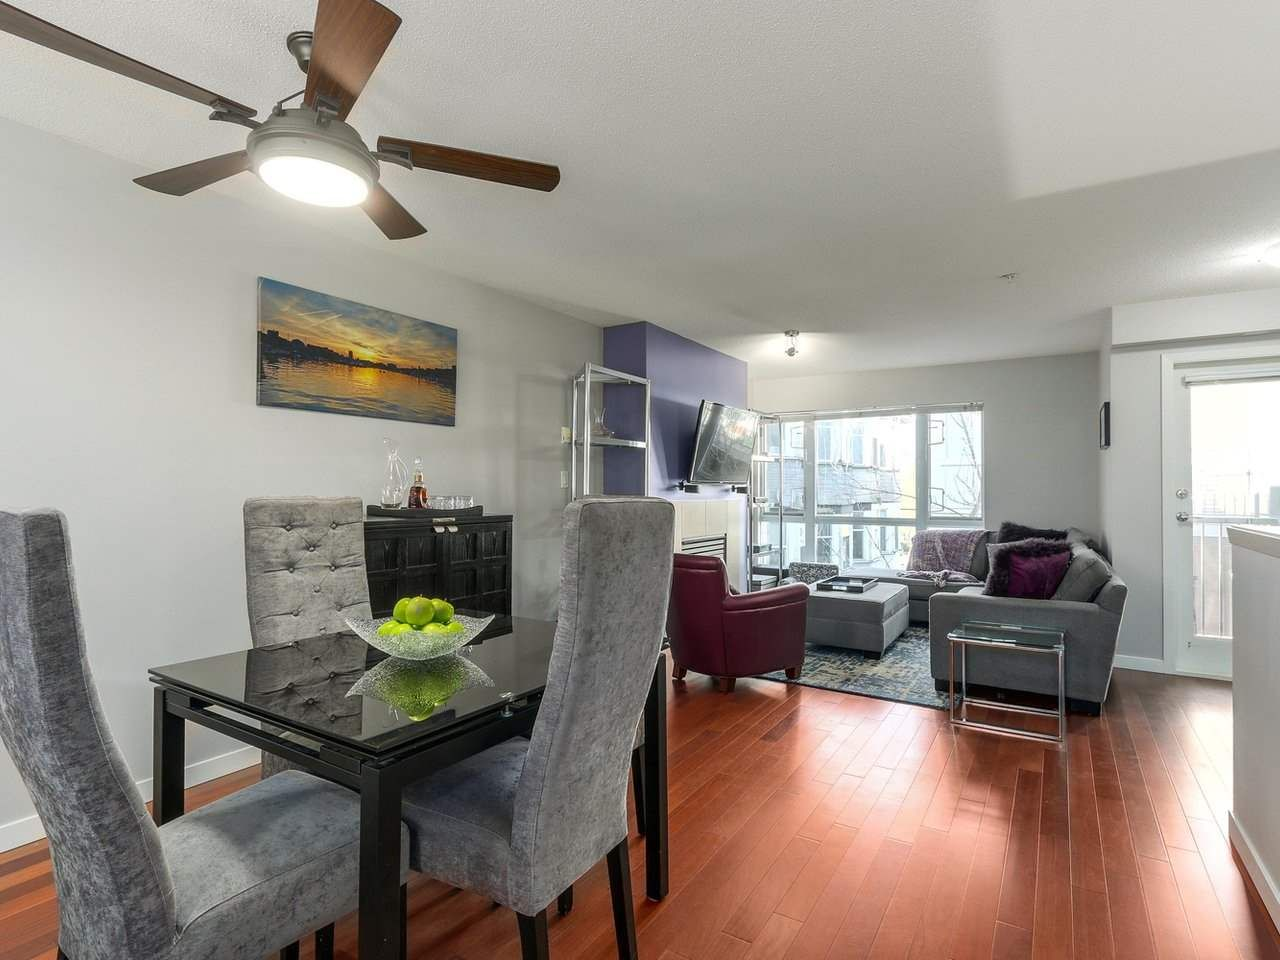 Photo 6: Photos: 119 672 W 6TH AVENUE in Vancouver: Fairview VW Townhouse for sale (Vancouver West)  : MLS®# R2401186